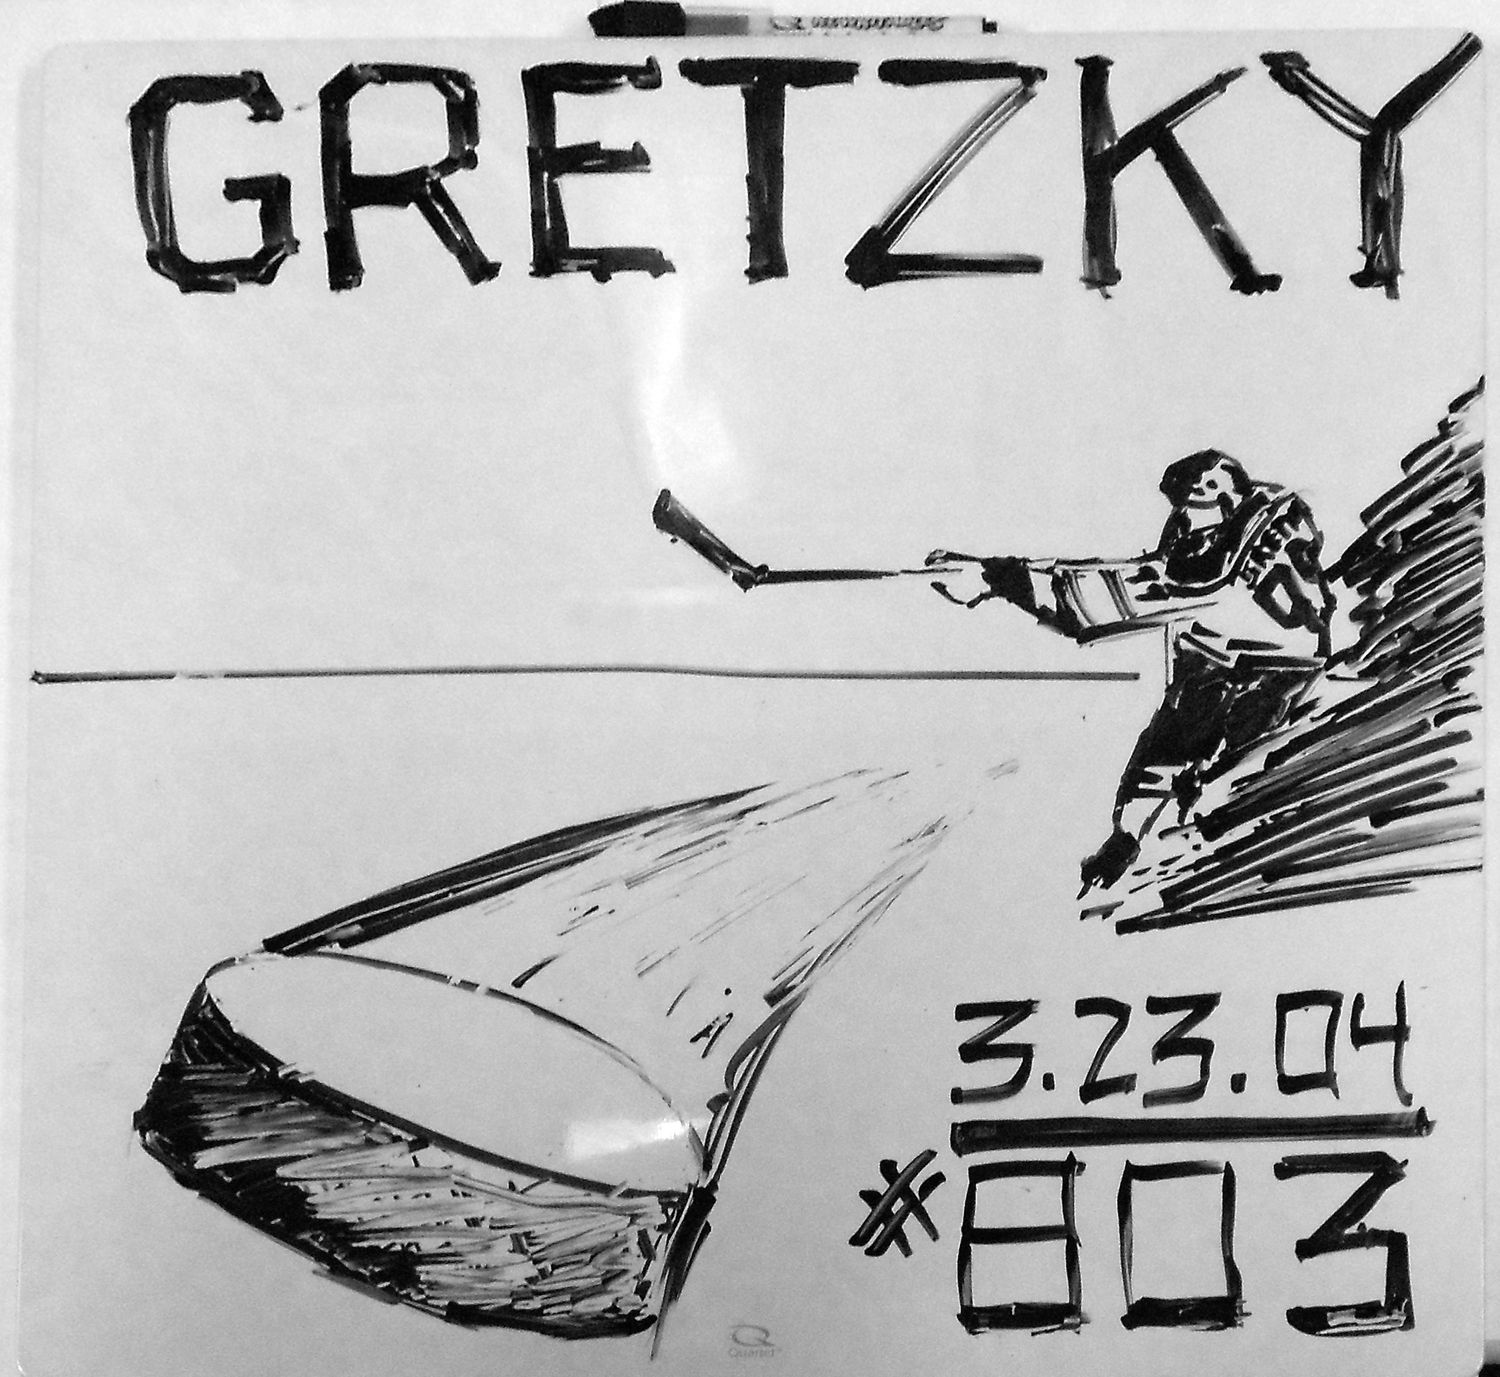 1994 - The great one, Wayne Gretzky, breaks the NHL record with 802 goals scored